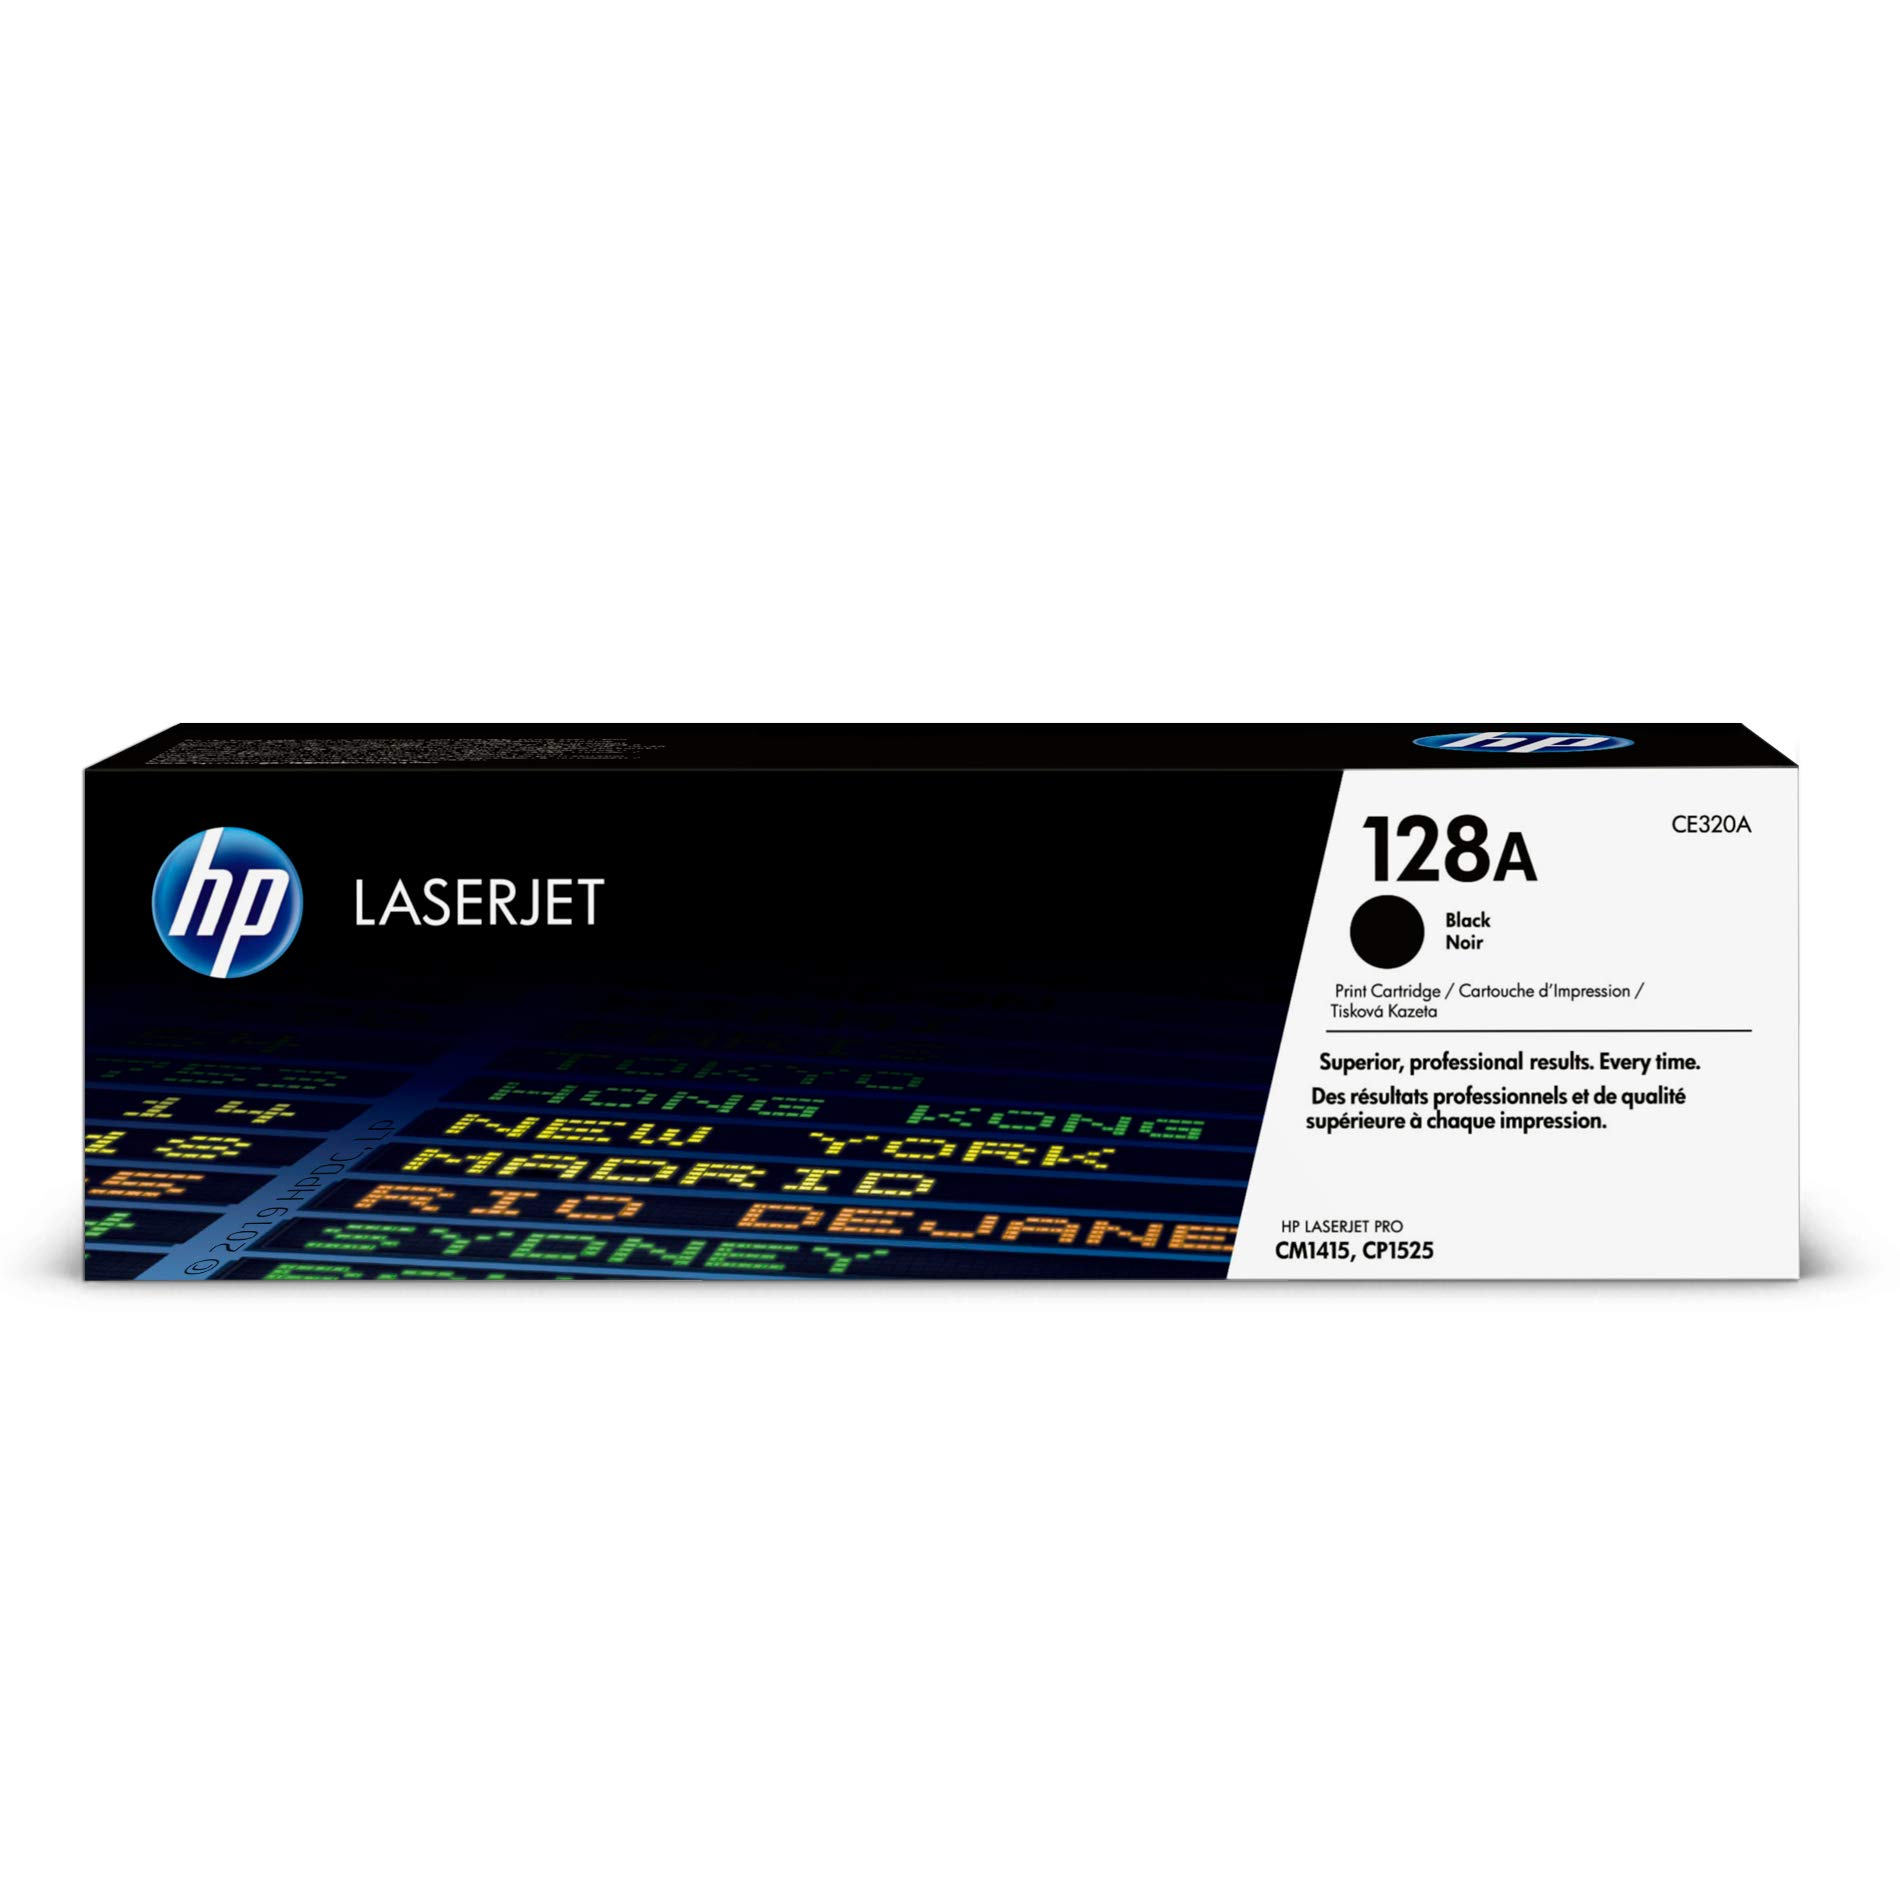 Toner Original HP 128A CE320A Black